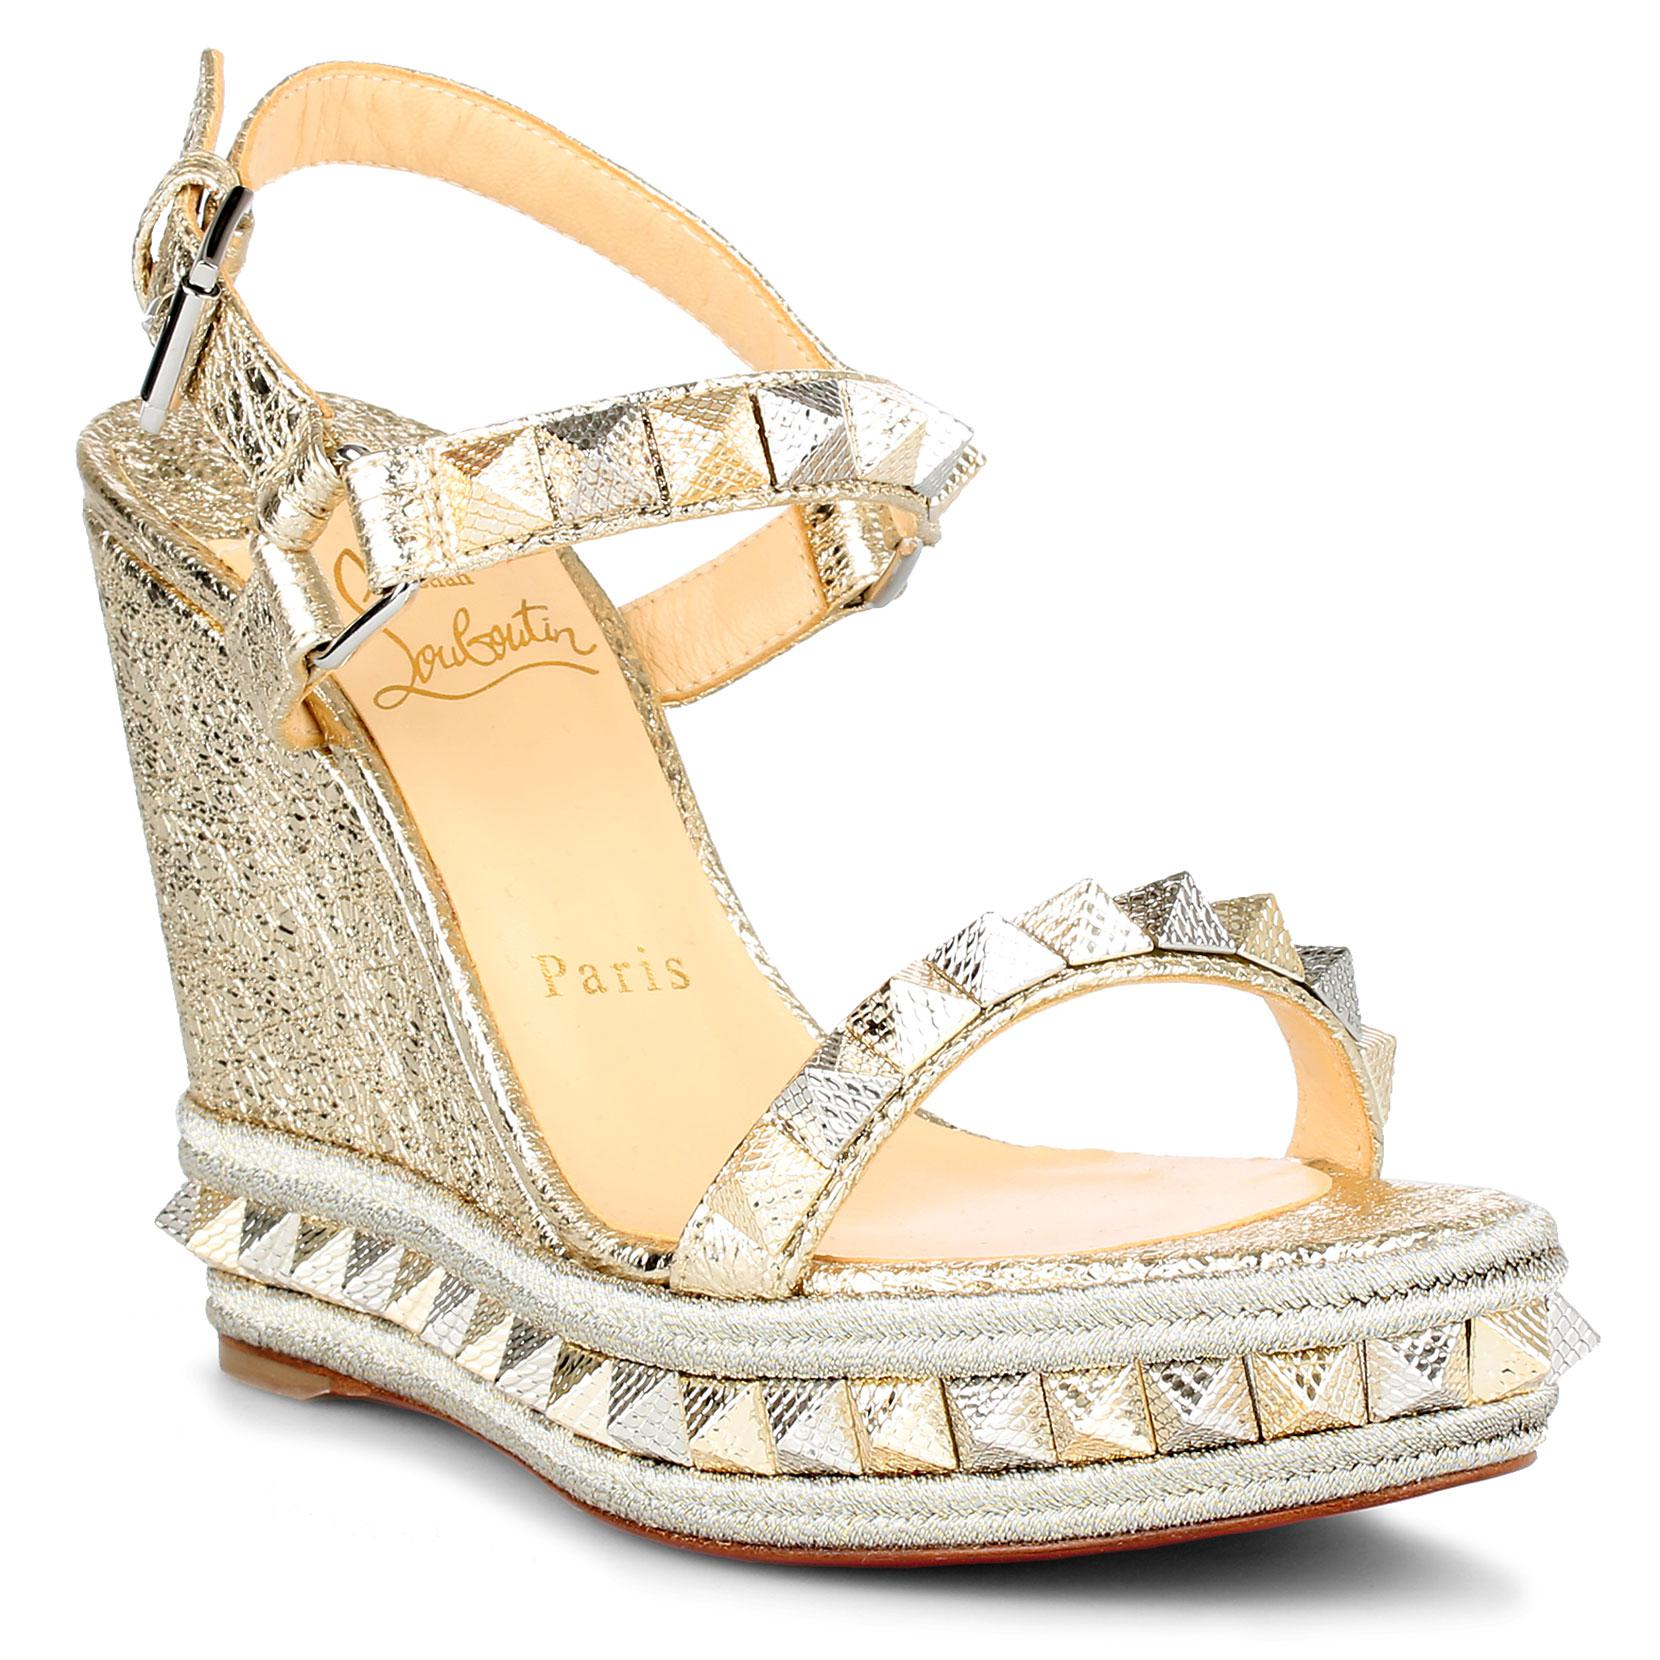 big discount online Christian Louboutin Metallic Espadrille Sandals clearance finishline outlet fashion Style from china 2015 new online 7H4pXqaaIX